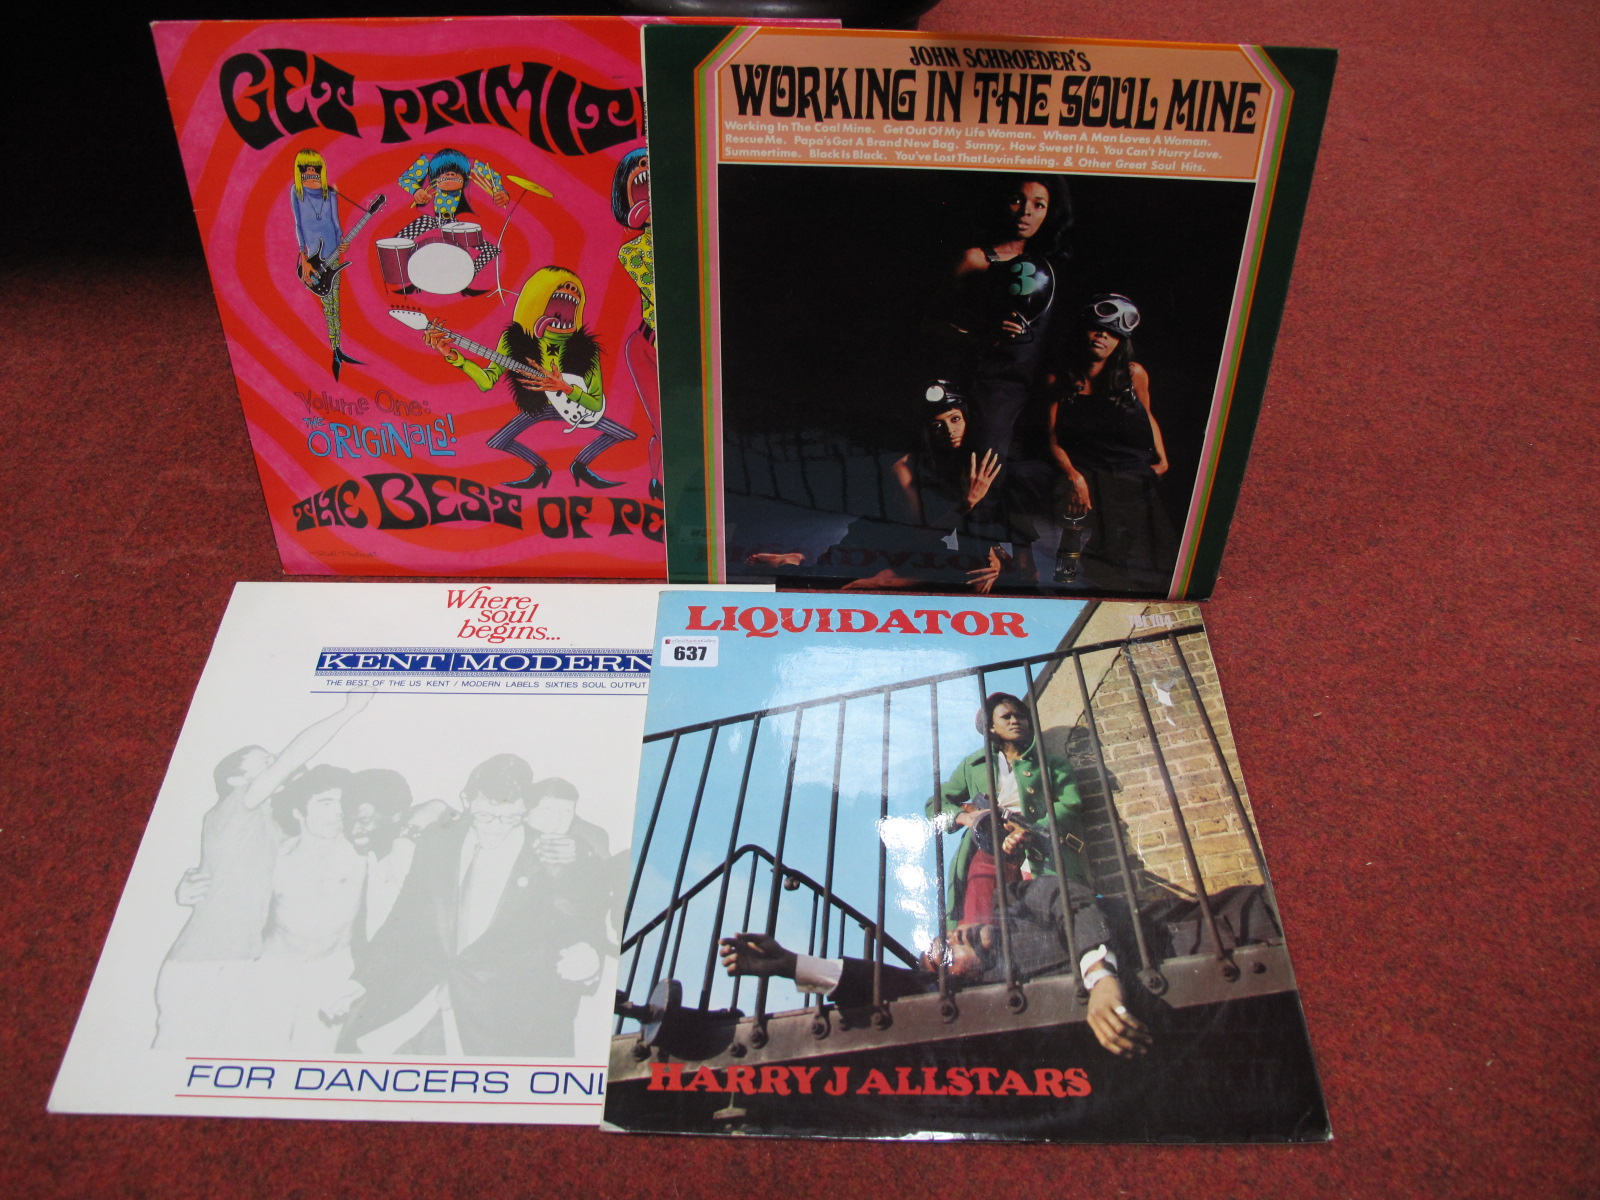 Lot 637 - Harry J All Stars 'Liquidator' LP (Trojan), John Schroeder's 'Working in The Soulmine' LP (Picadilly